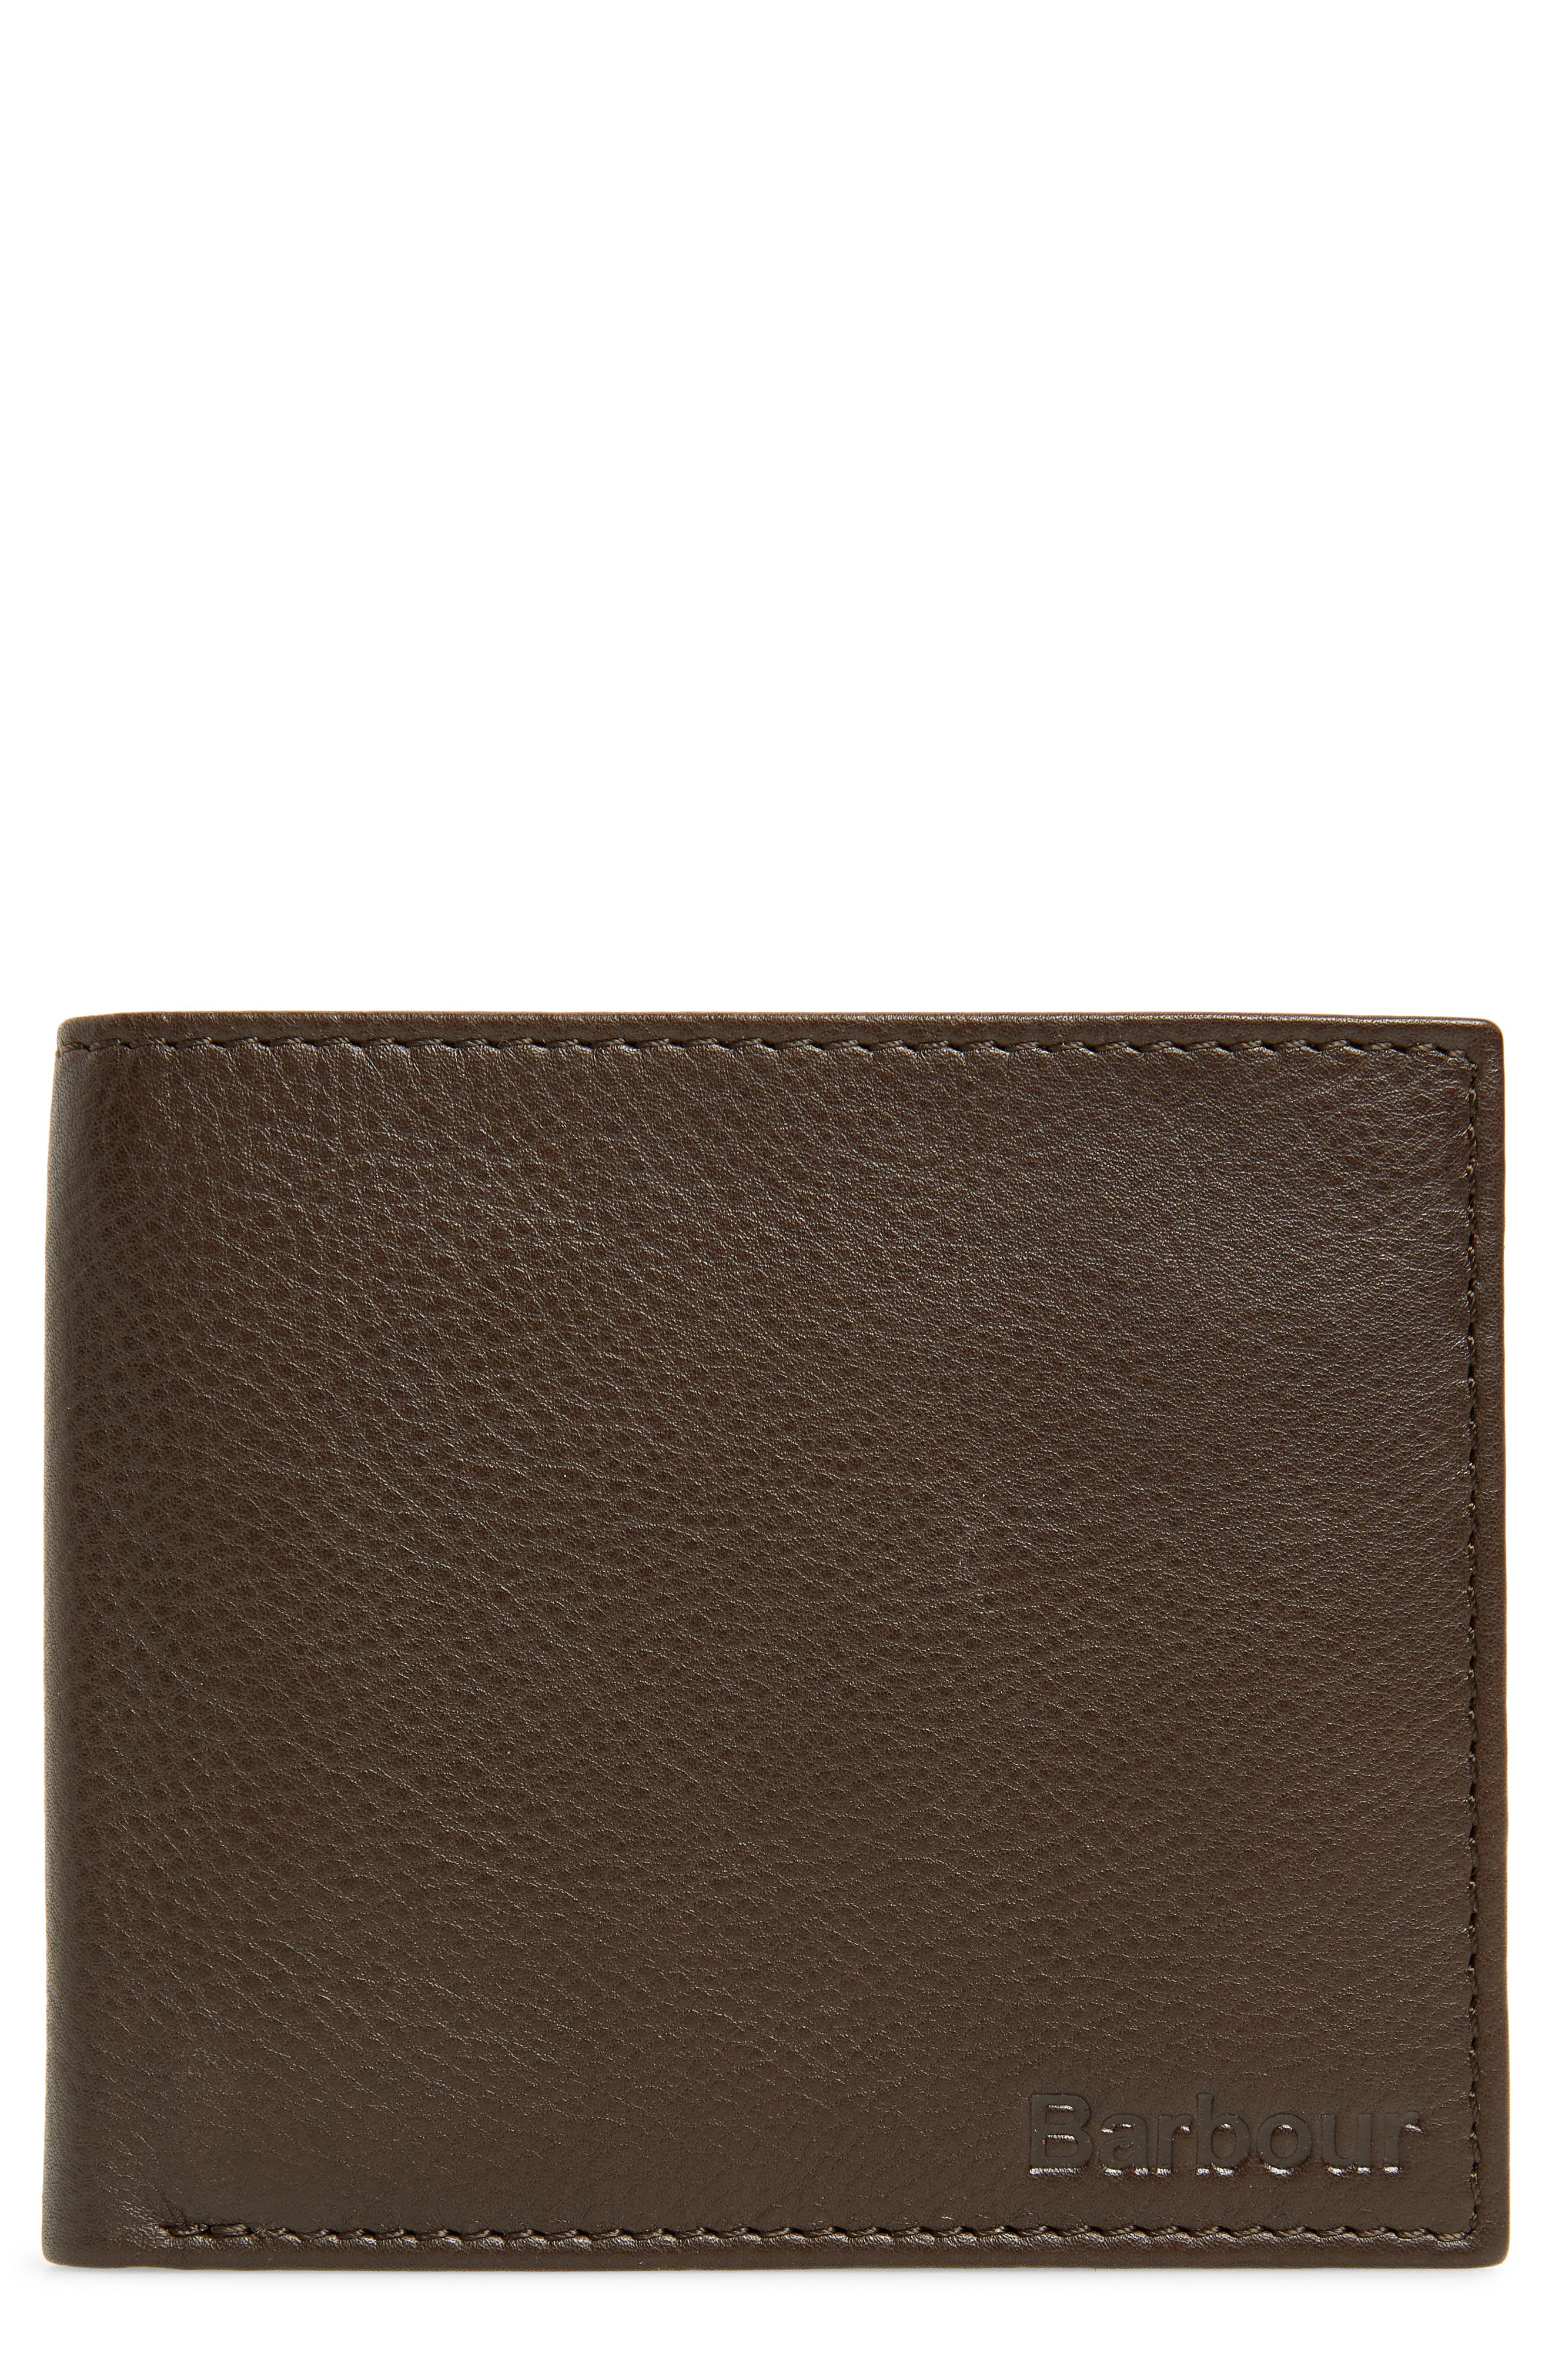 Leather Wallet,                             Main thumbnail 1, color,                             200